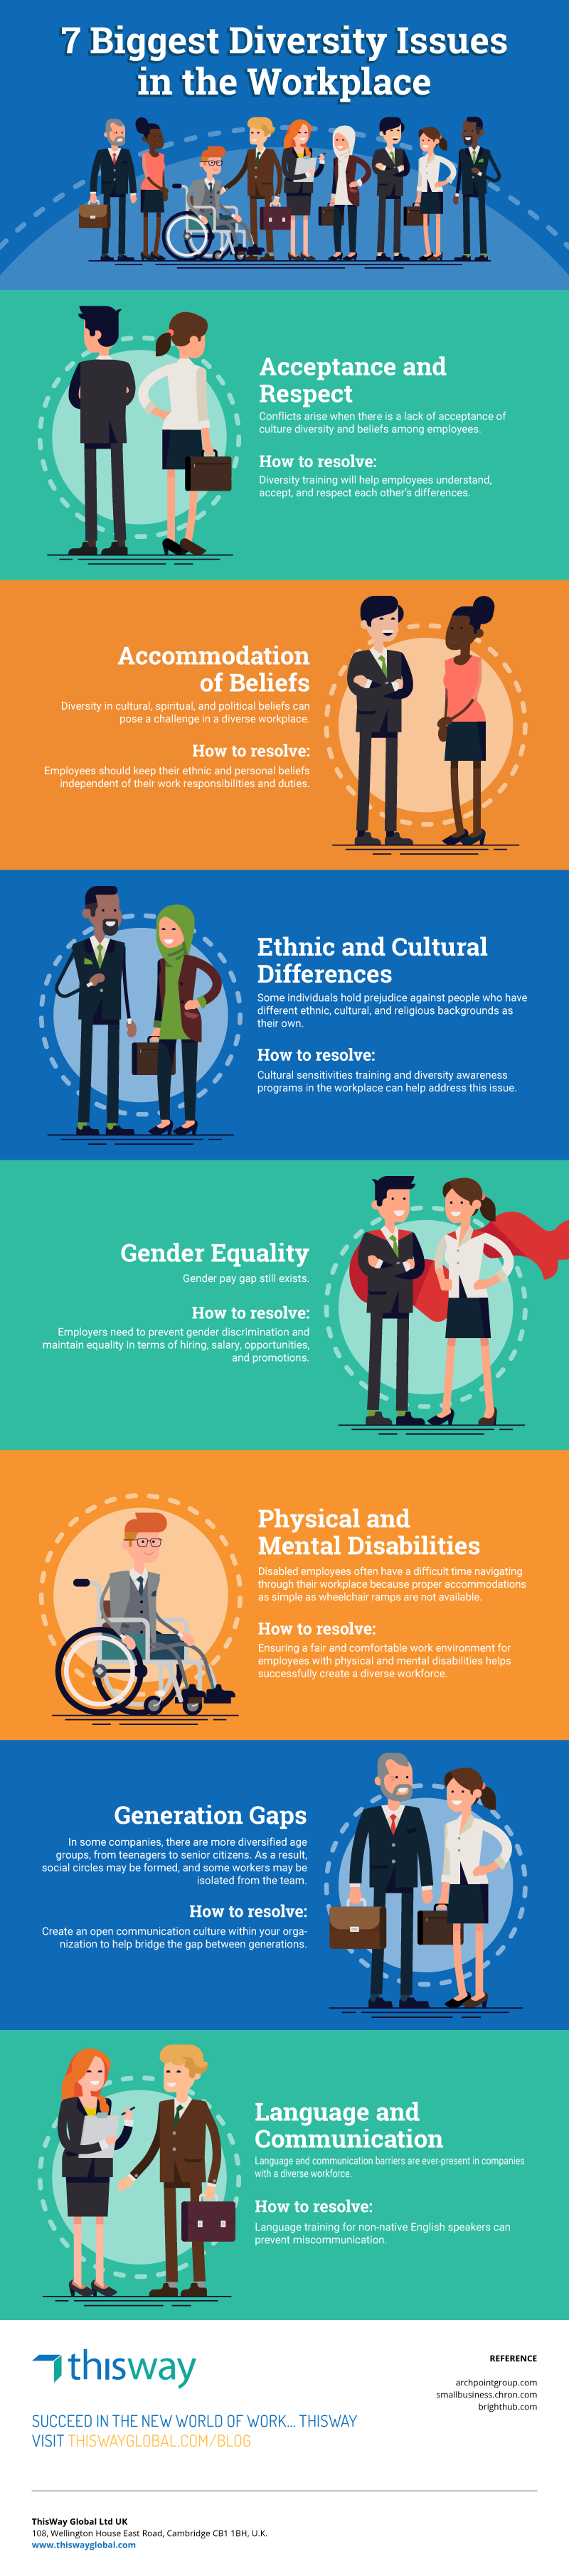 16 Diversity Inclusion In The Workplace Ideas In 2021 Workplace Diversity Inclusion